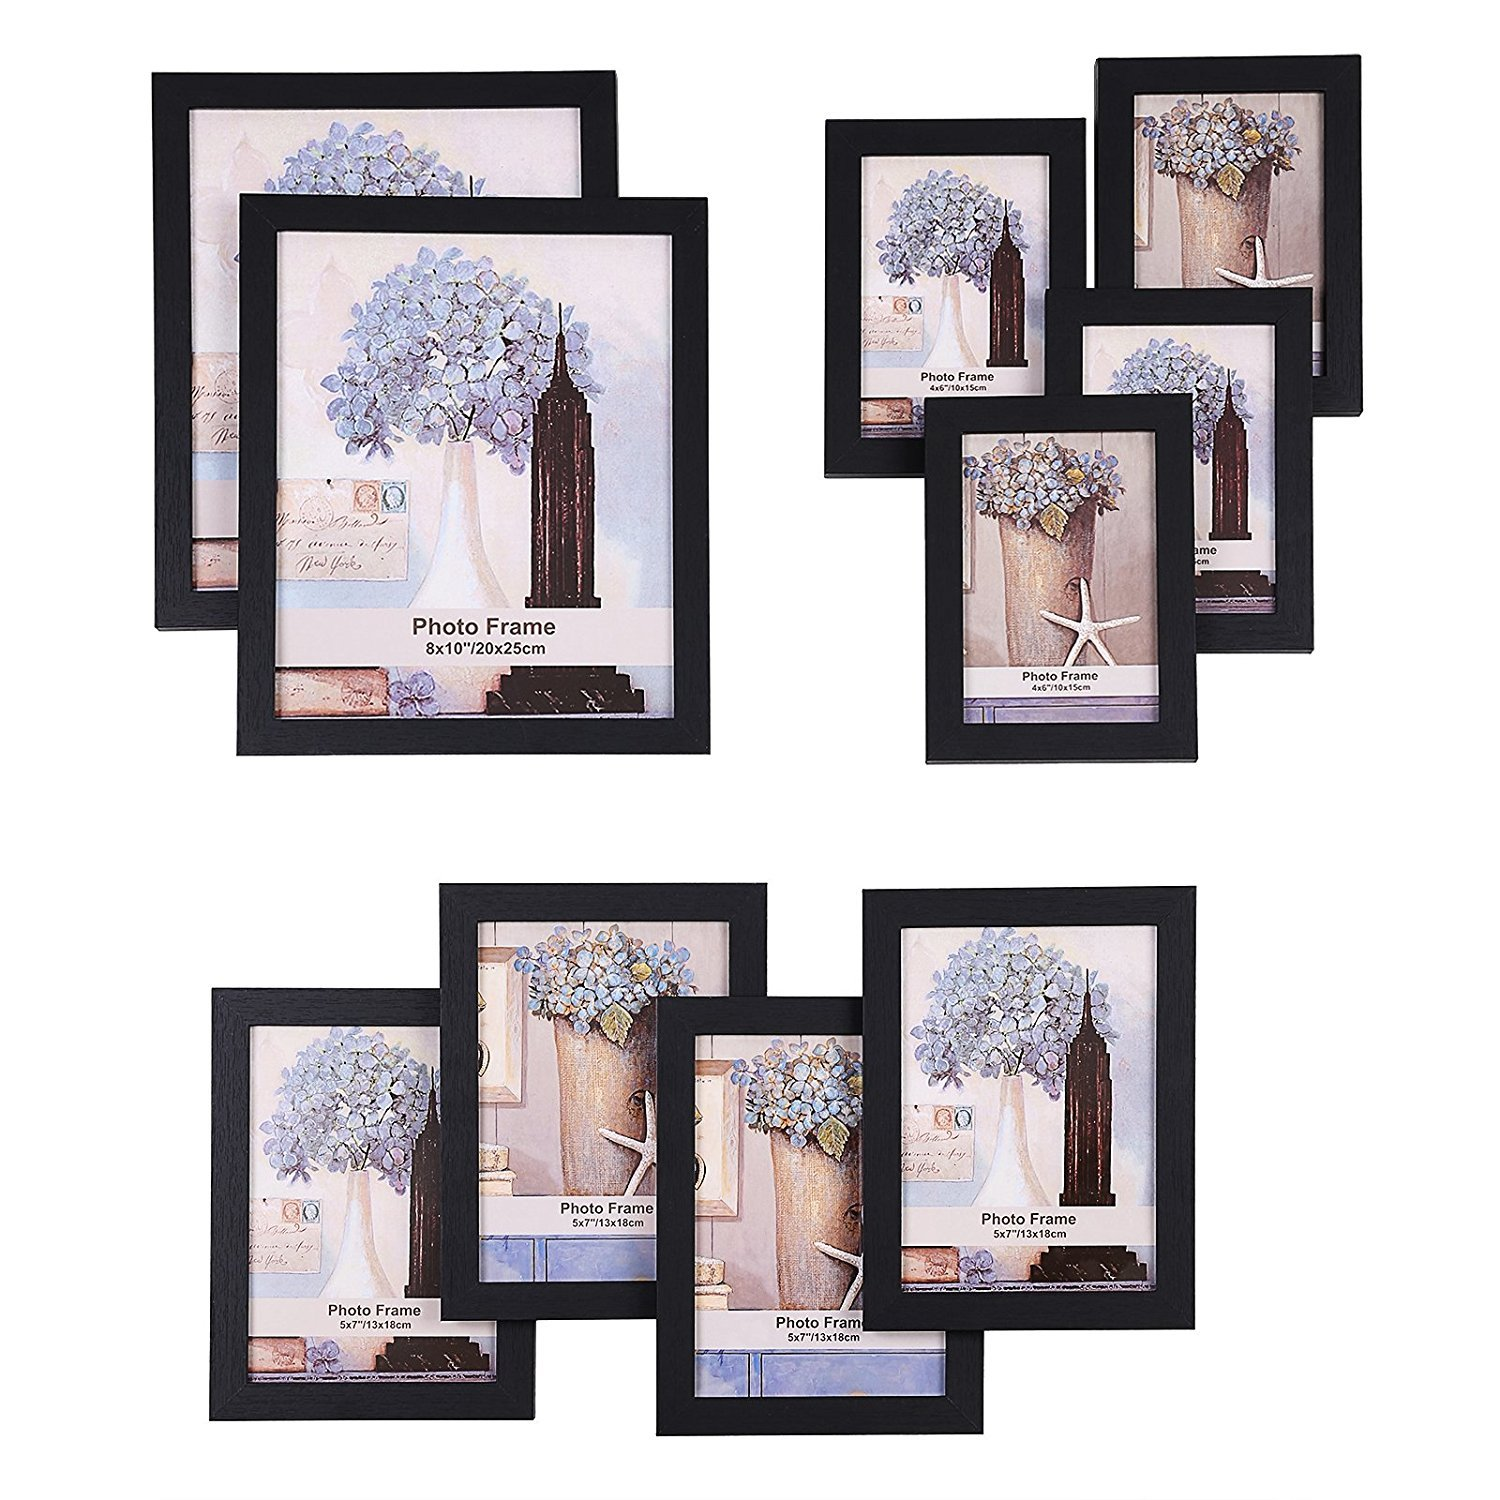 SONGMICS Picture Frames Set of 10 Frames with Glass Front - Two 8x10 Inches in, Four 5x7 Inches in, Four 4x6 Inches in, Collage Photo Frames Wood Grain Black URPF10B by SONGMICS